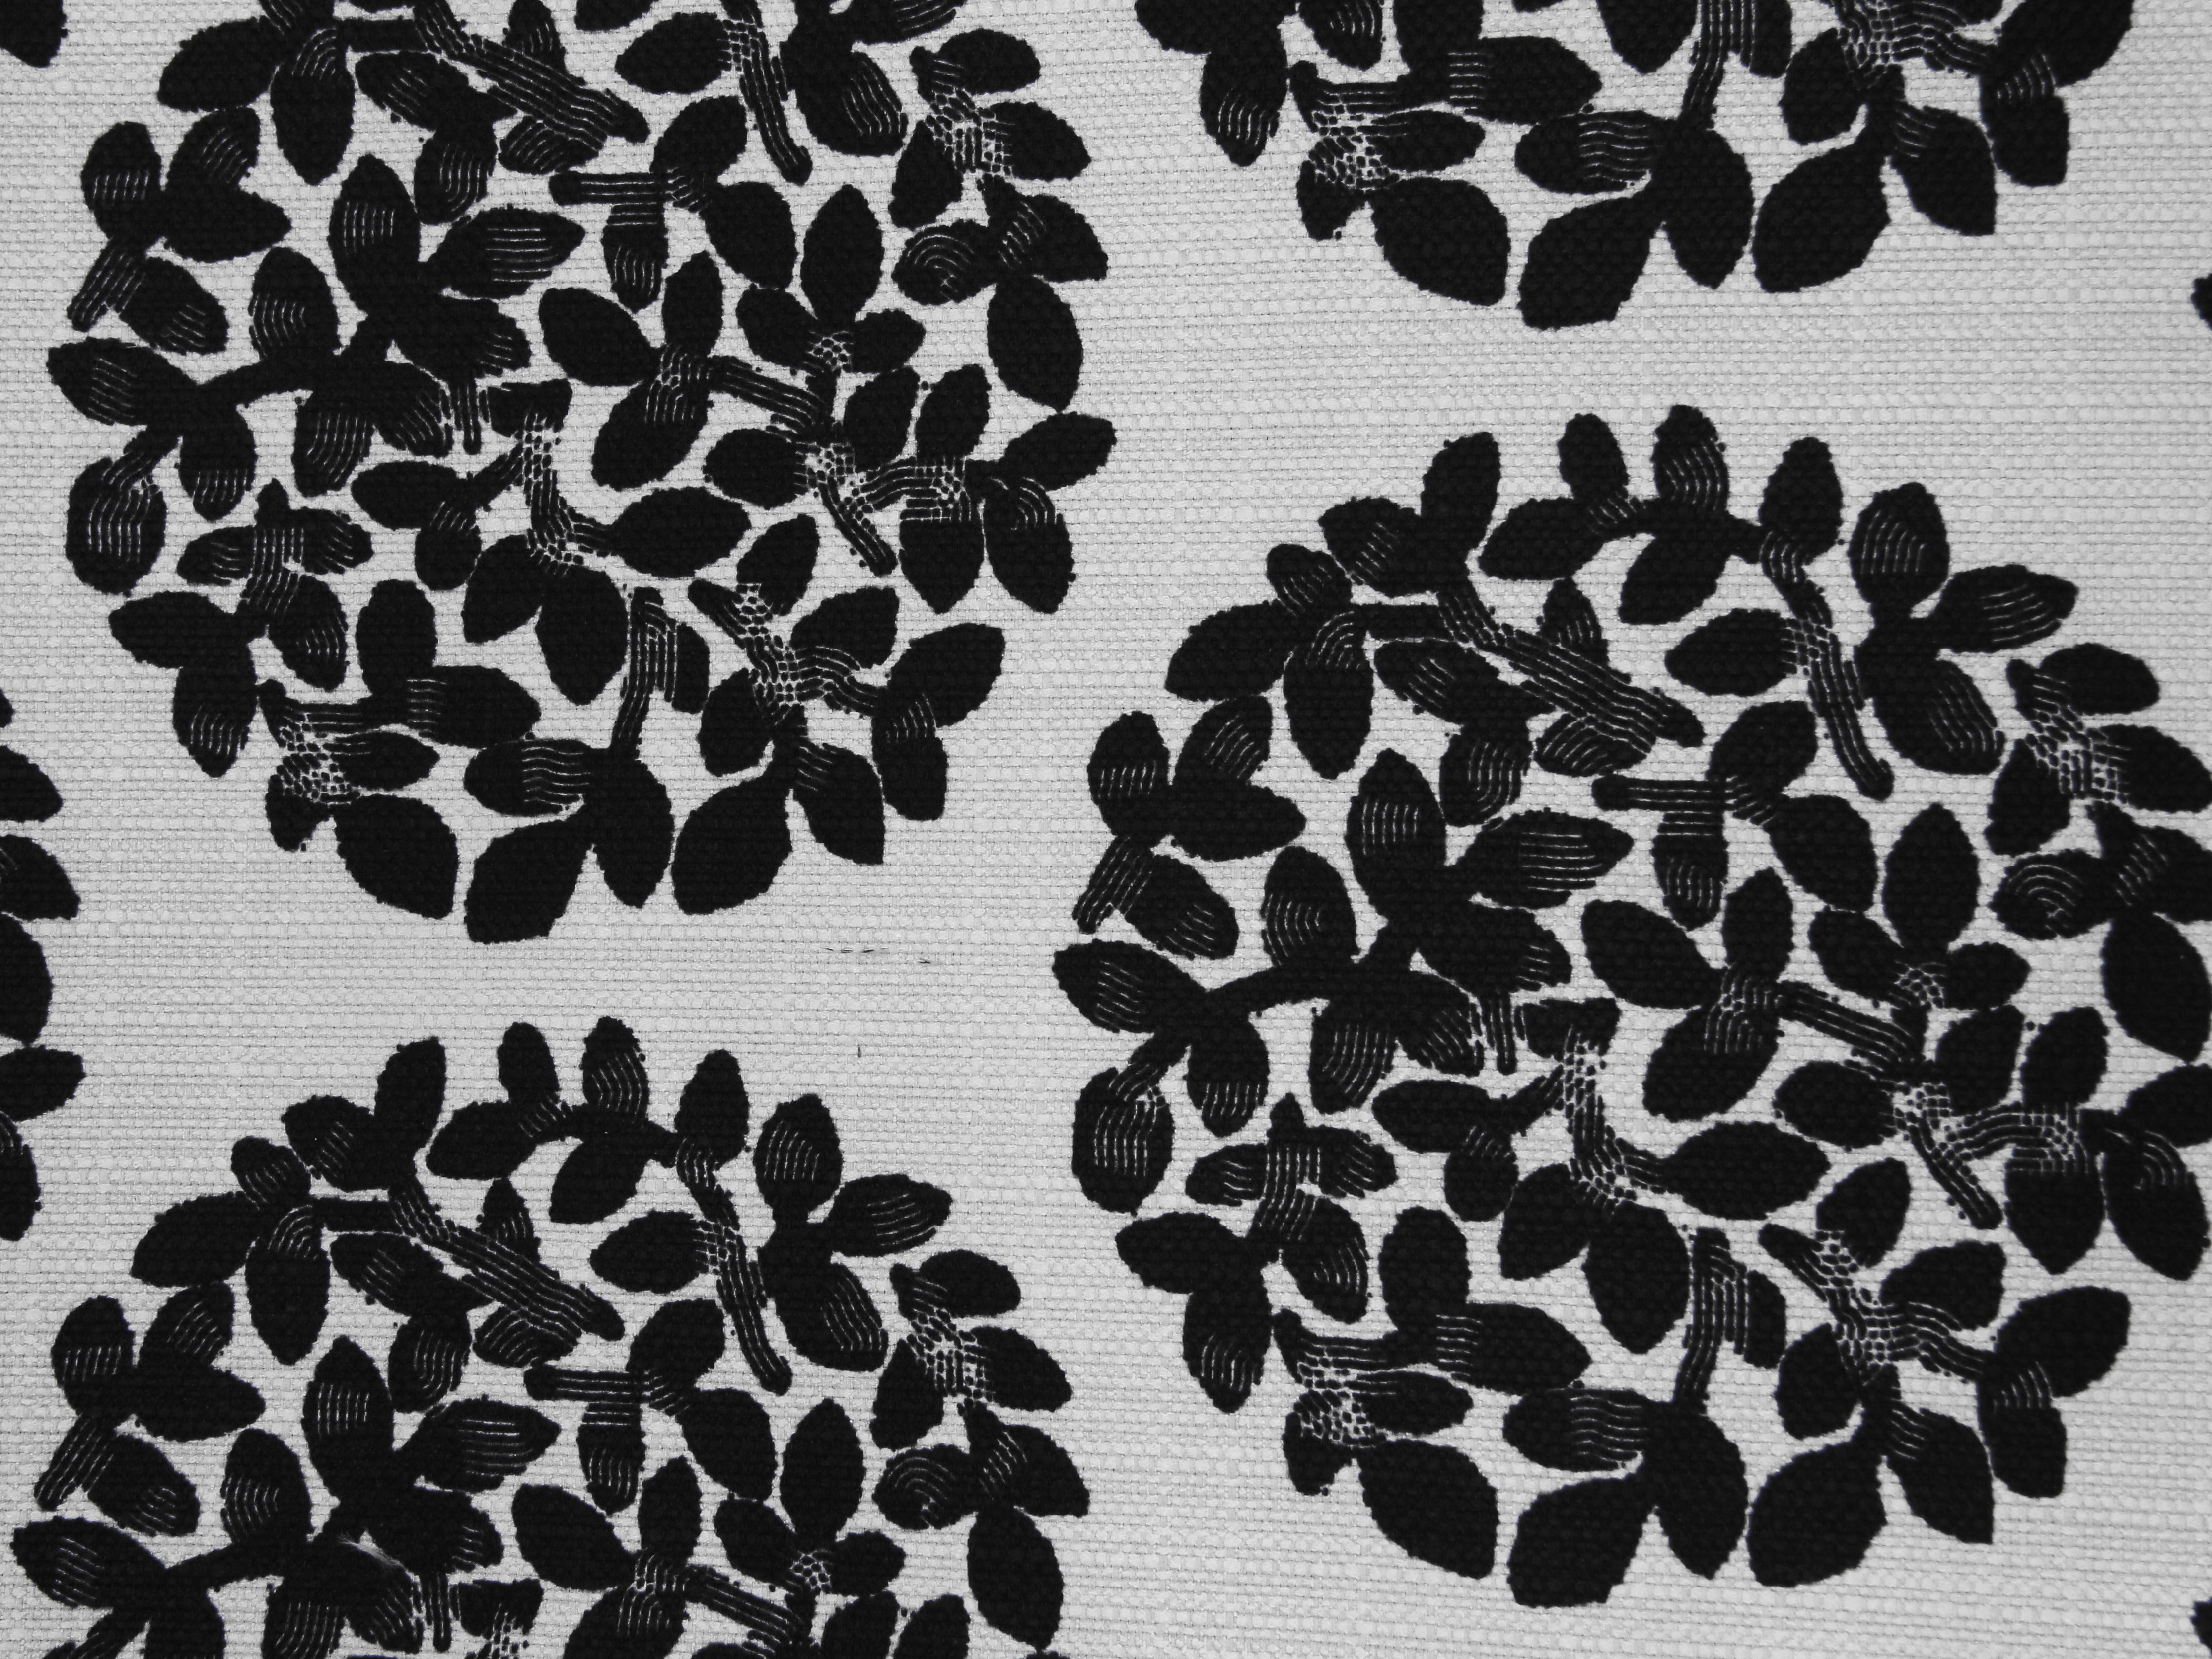 fabric texture leafy ball pattern black white cloth abstract ... for White Fabric Texture Design  193tgx